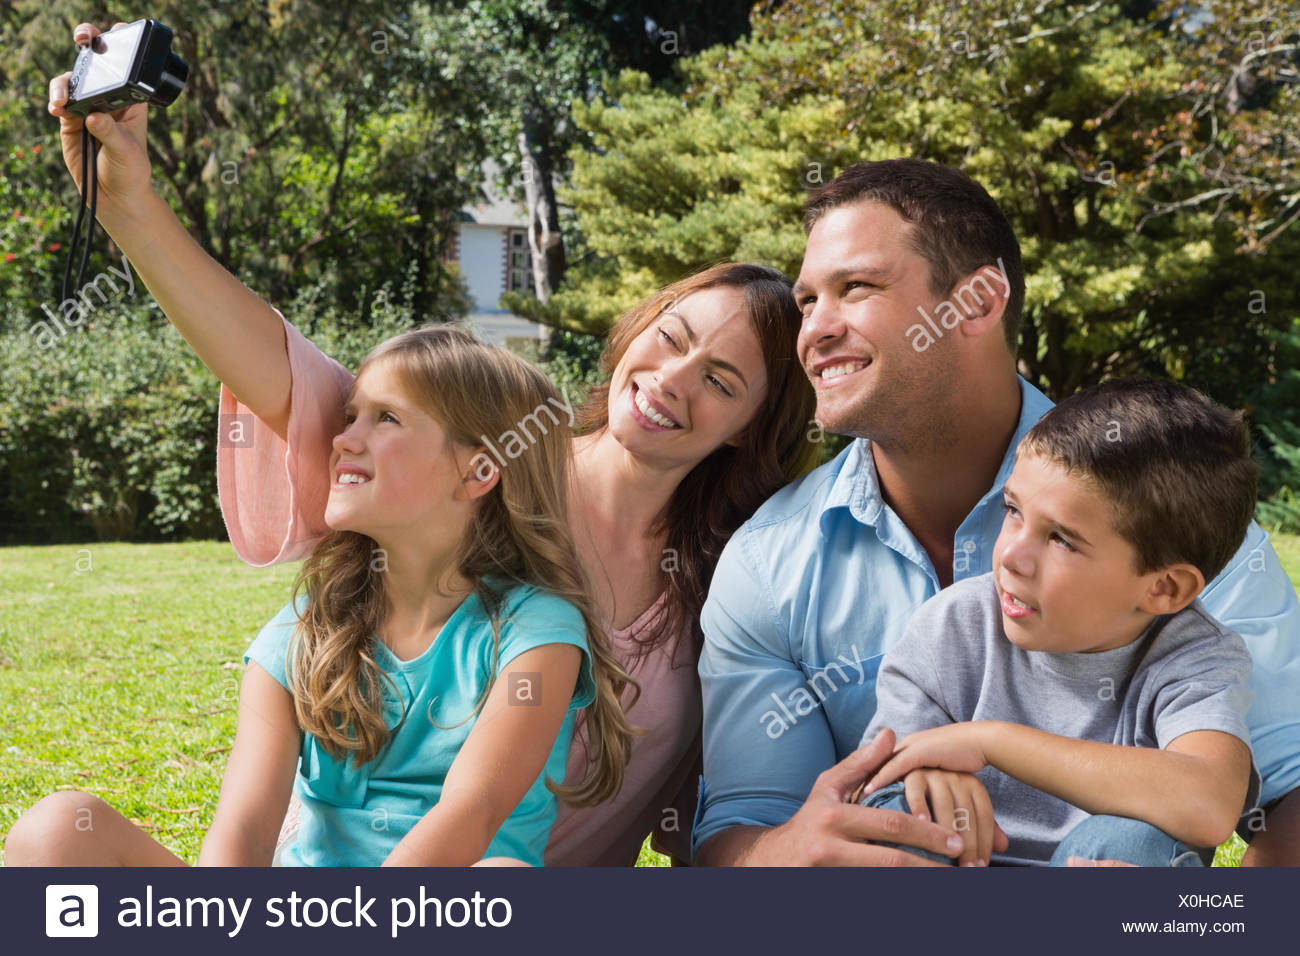 Happy family in a park taking photos - Stock Image